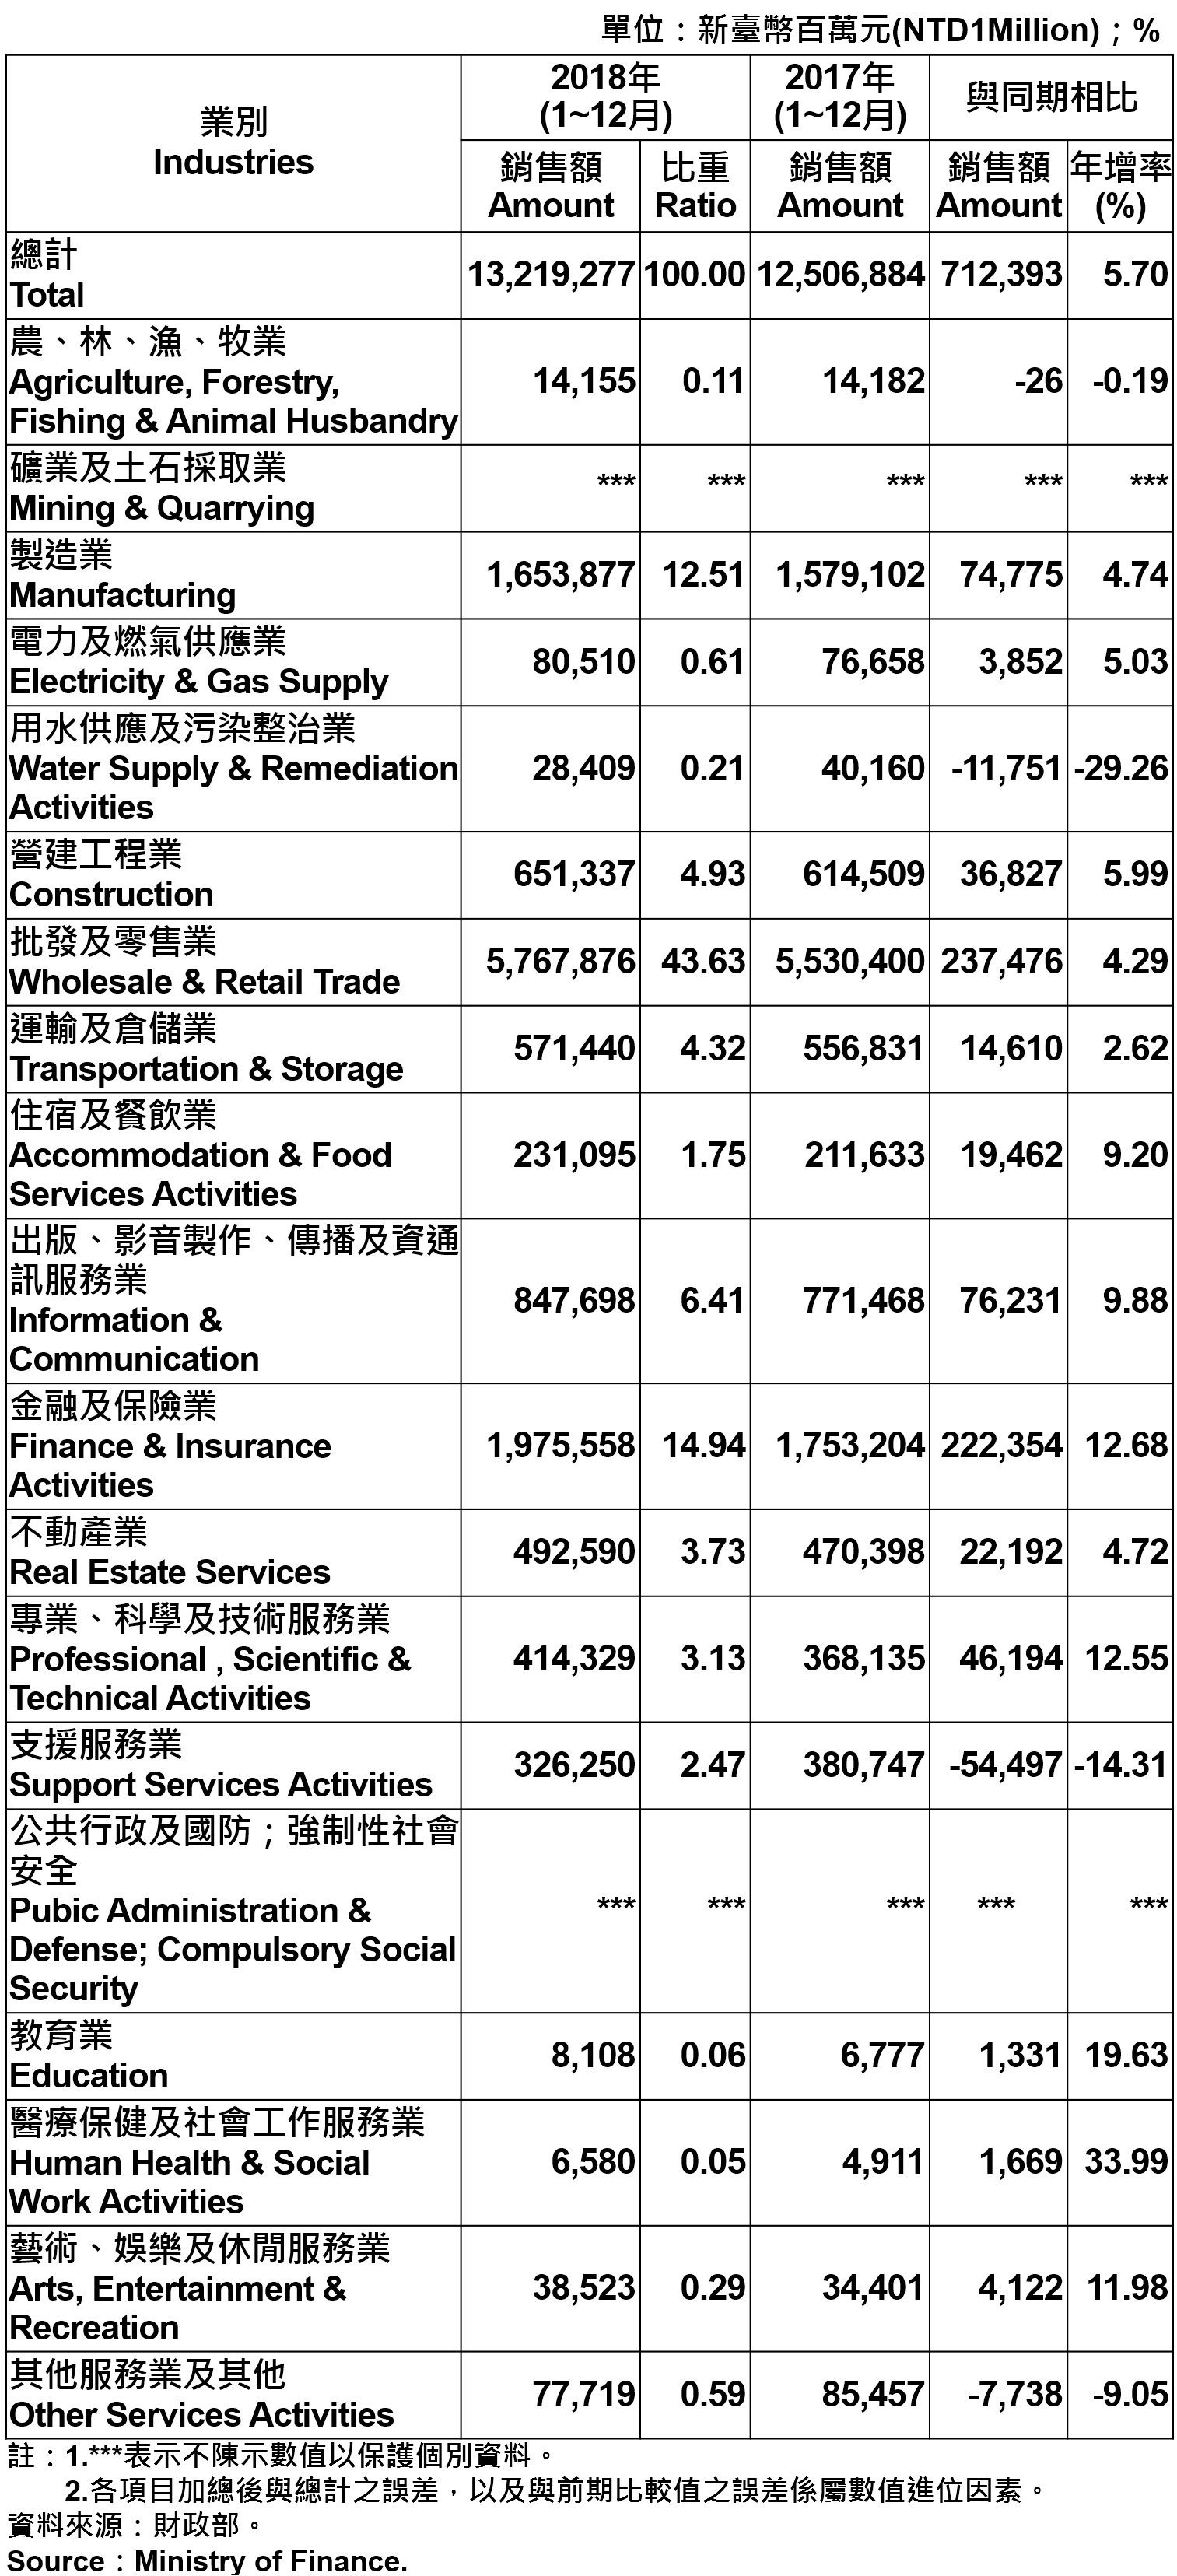 臺北市各產業公司行號銷售額 —2018 Operating Income for Business Enterprises in Taipei City—2018